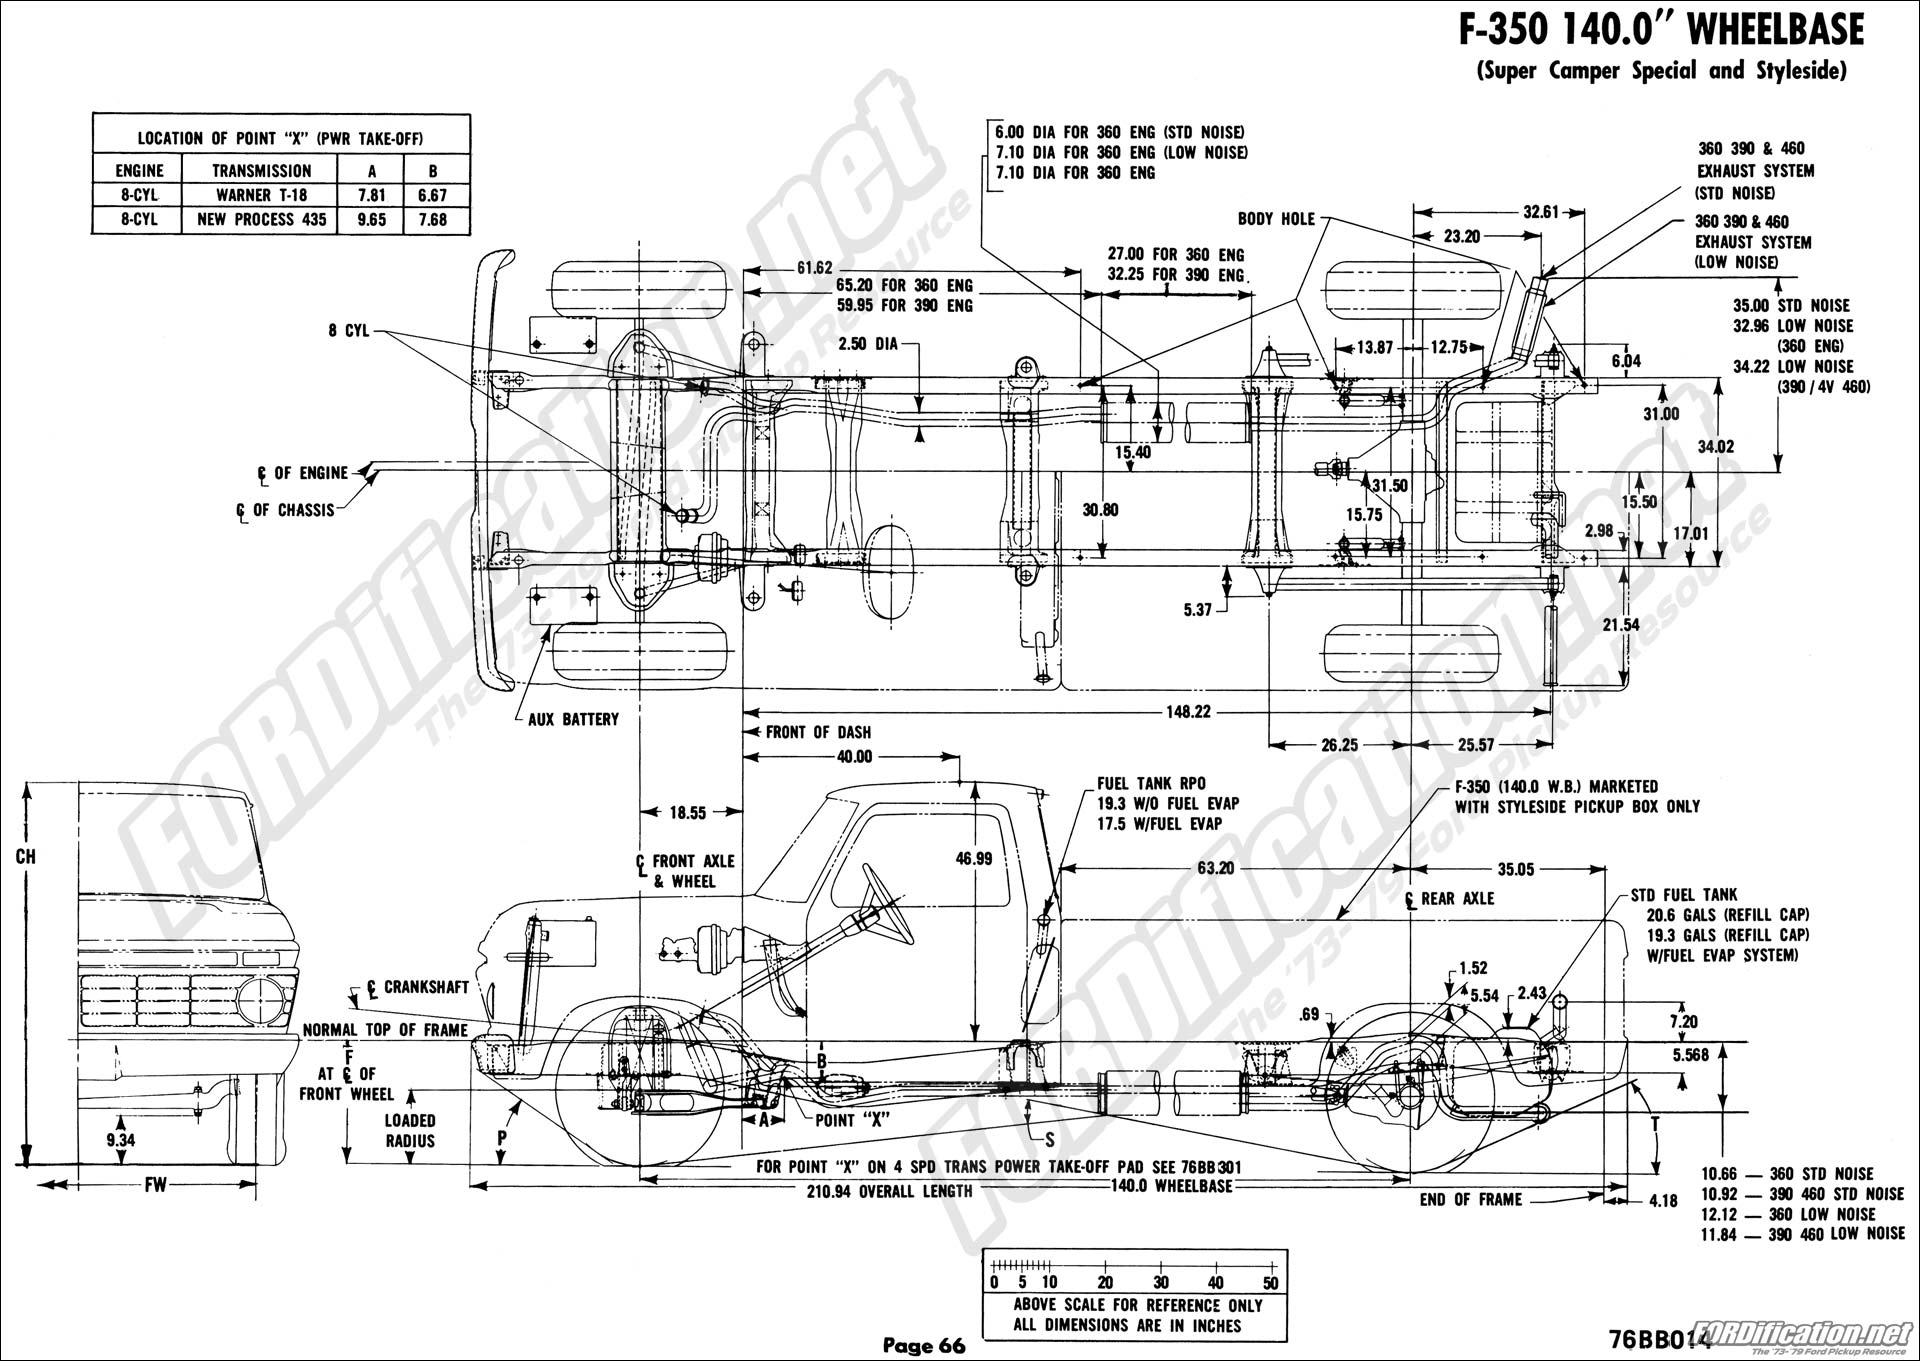 Ford Truck Drawing At Free For Personal Use 1969 Bronco Fuse Box 1920x1361 1976 Body Builders Layout Book